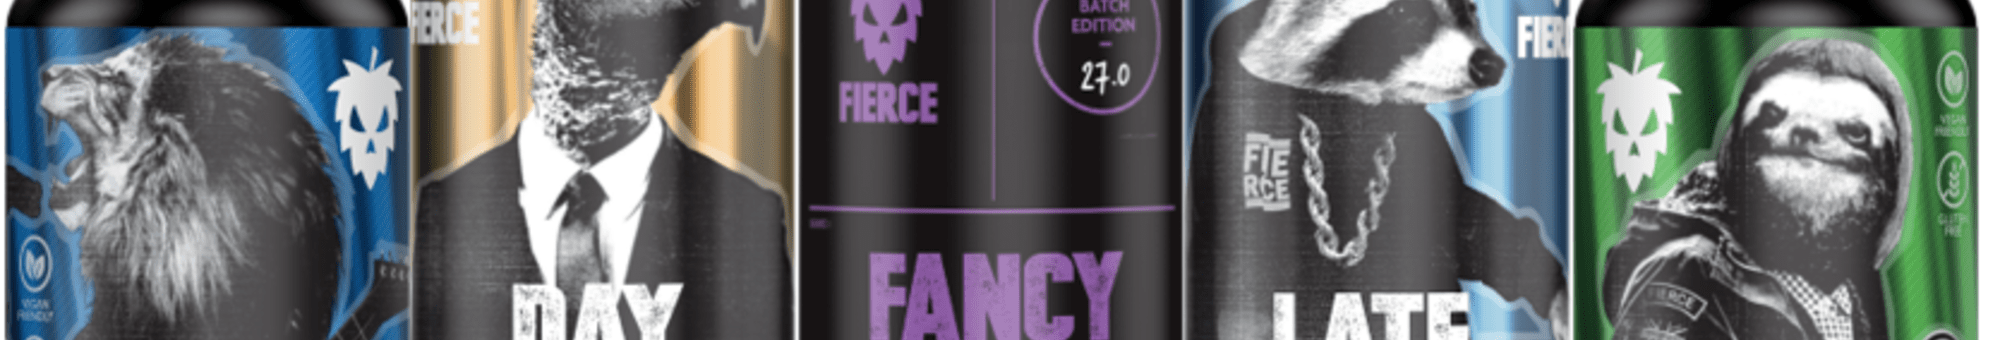 Hoppy Beers on Fierce Brewing